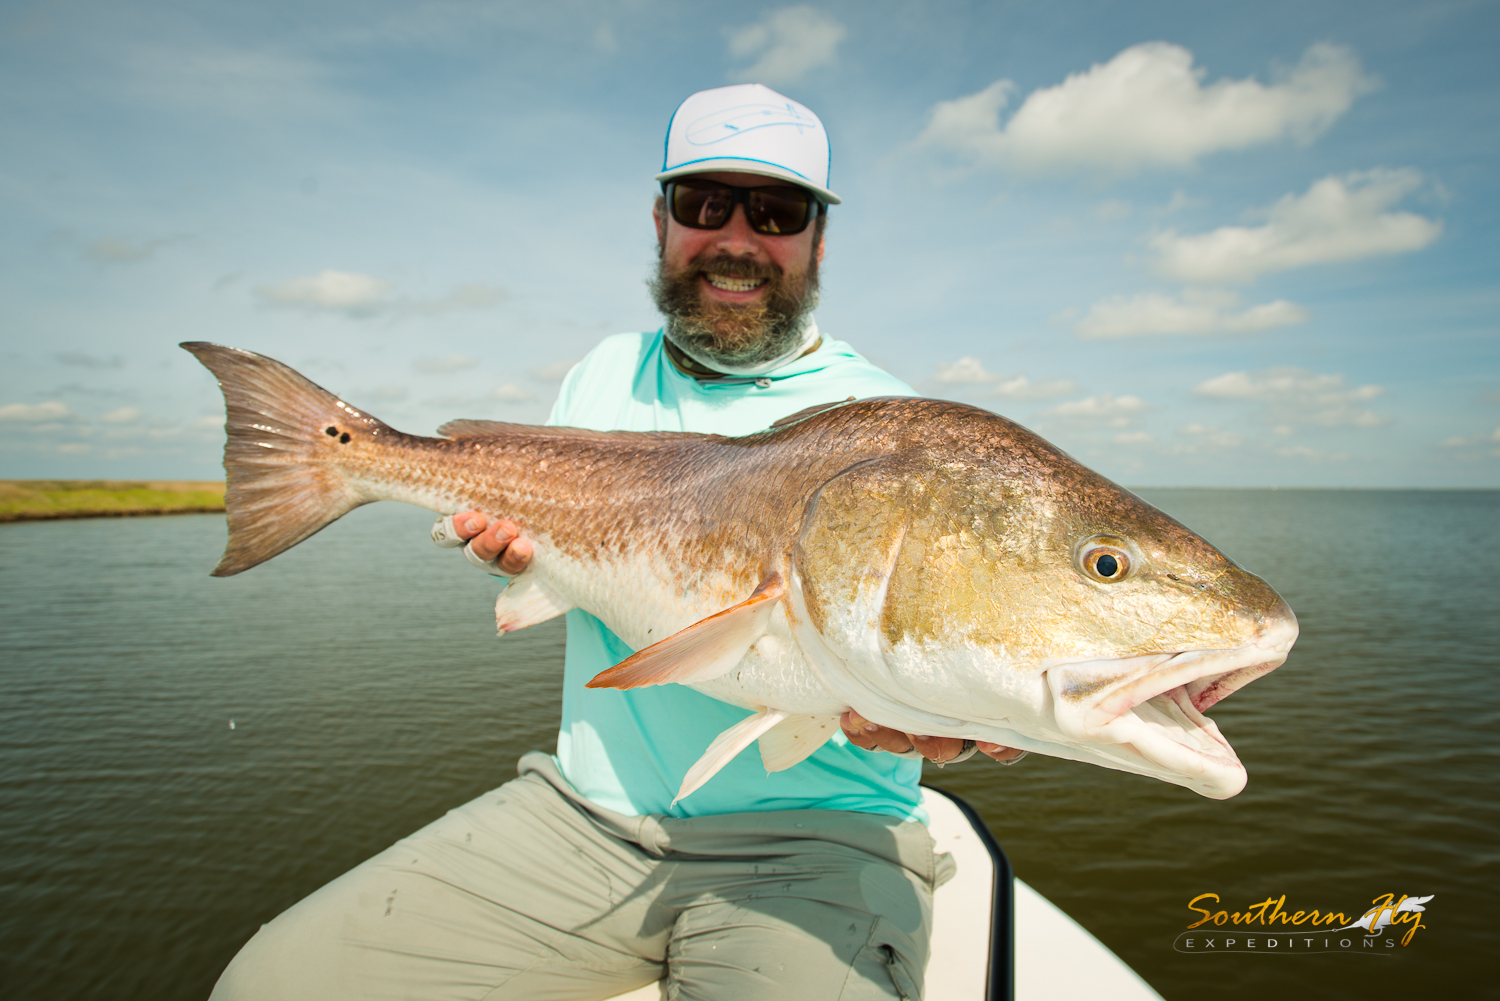 Marsh water Fly Fishing New Orleans with Southern Fly Expeditions - Fly Fishing New Orleans